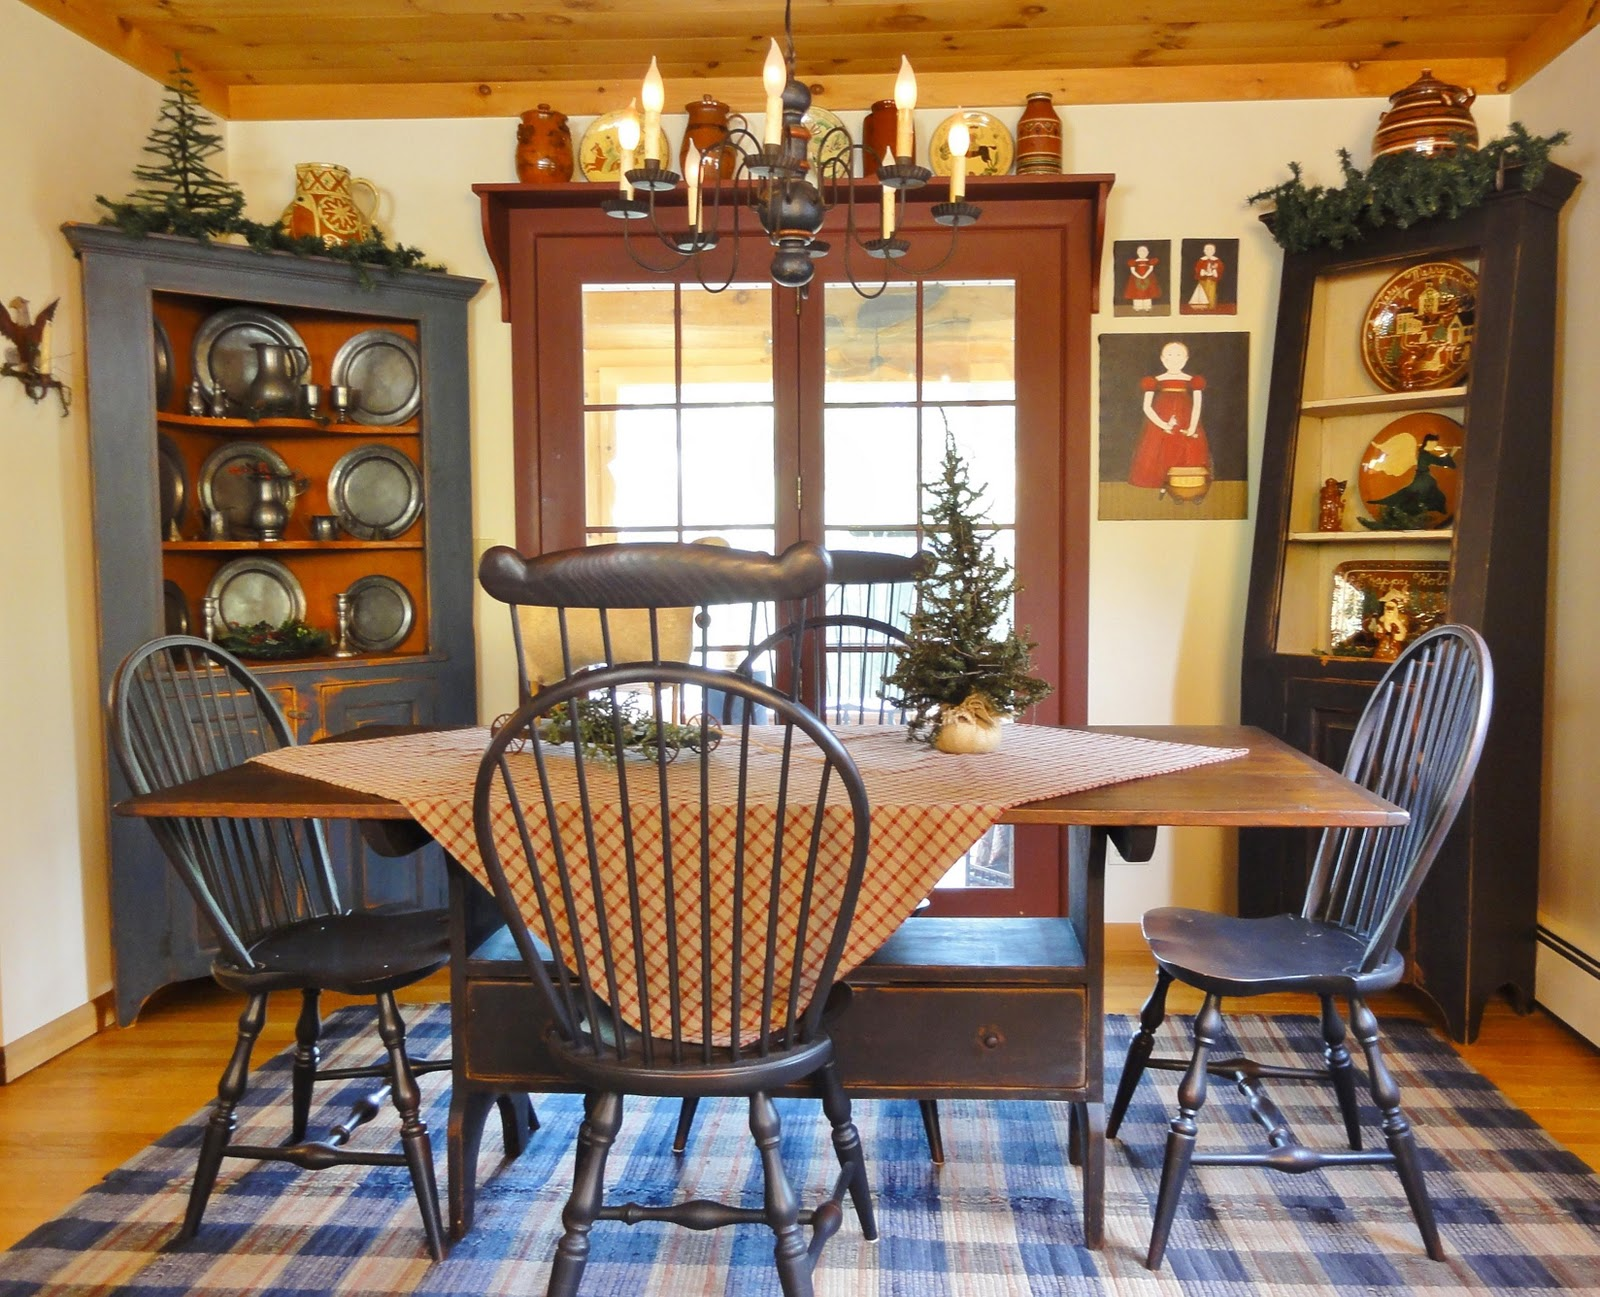 Colonial Dining Room Furniture: A Primitive Place & Country Journal Magazine: Holiday 2011